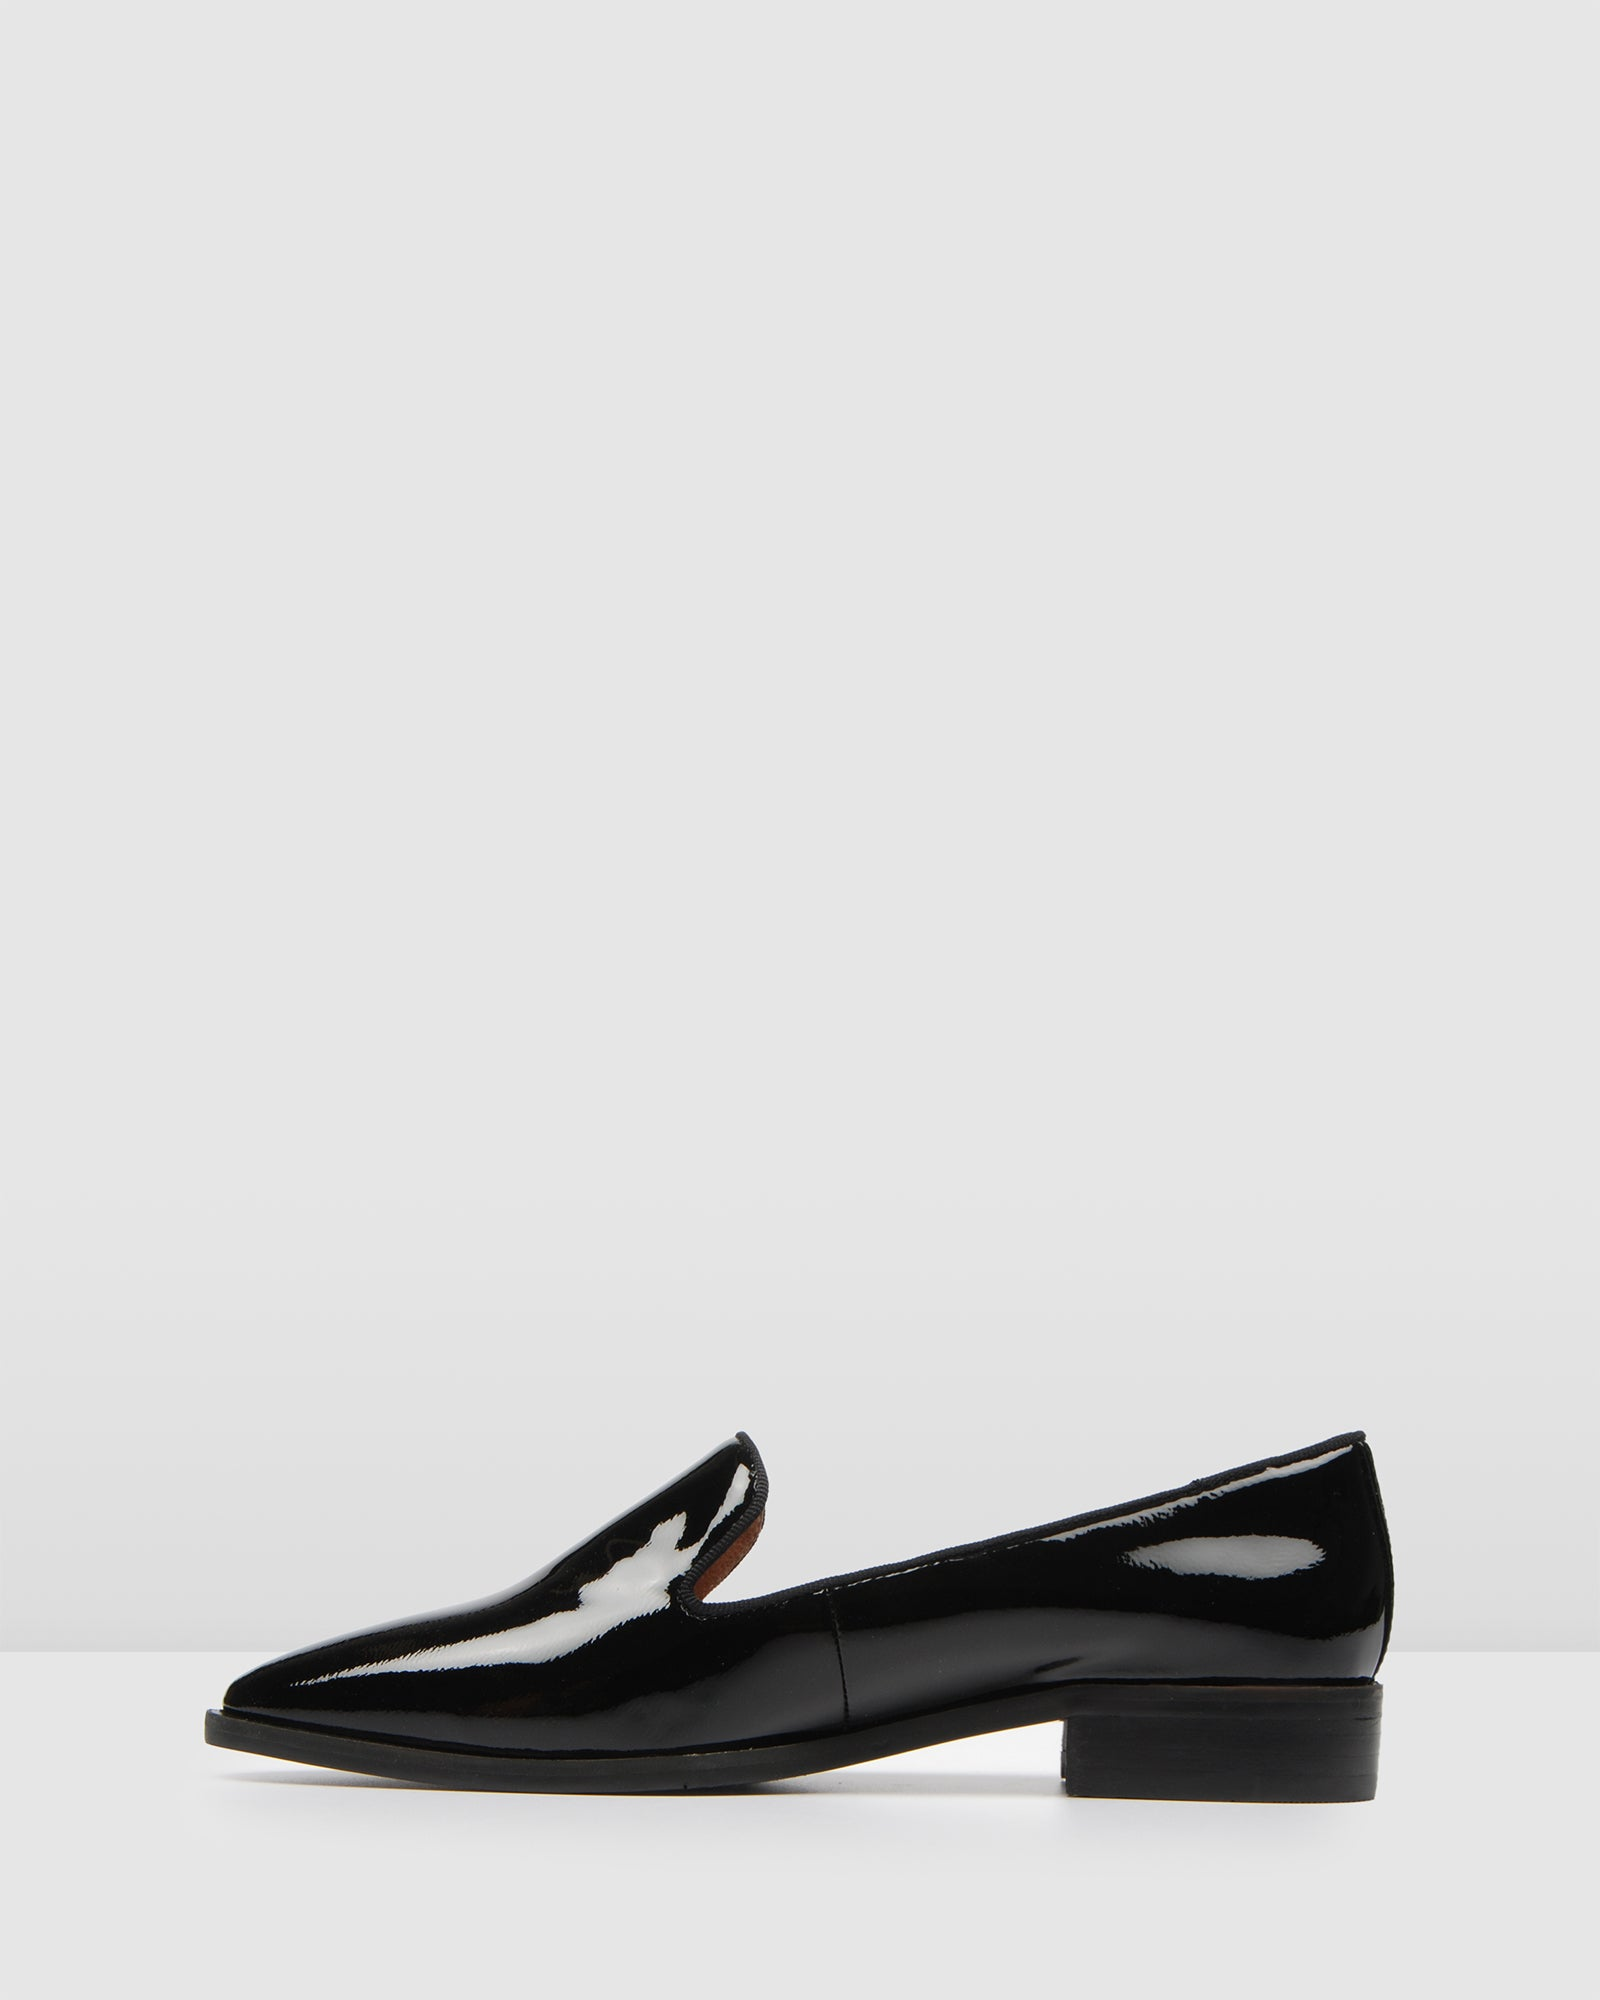 NODY LOAFERS BLACK PATENT